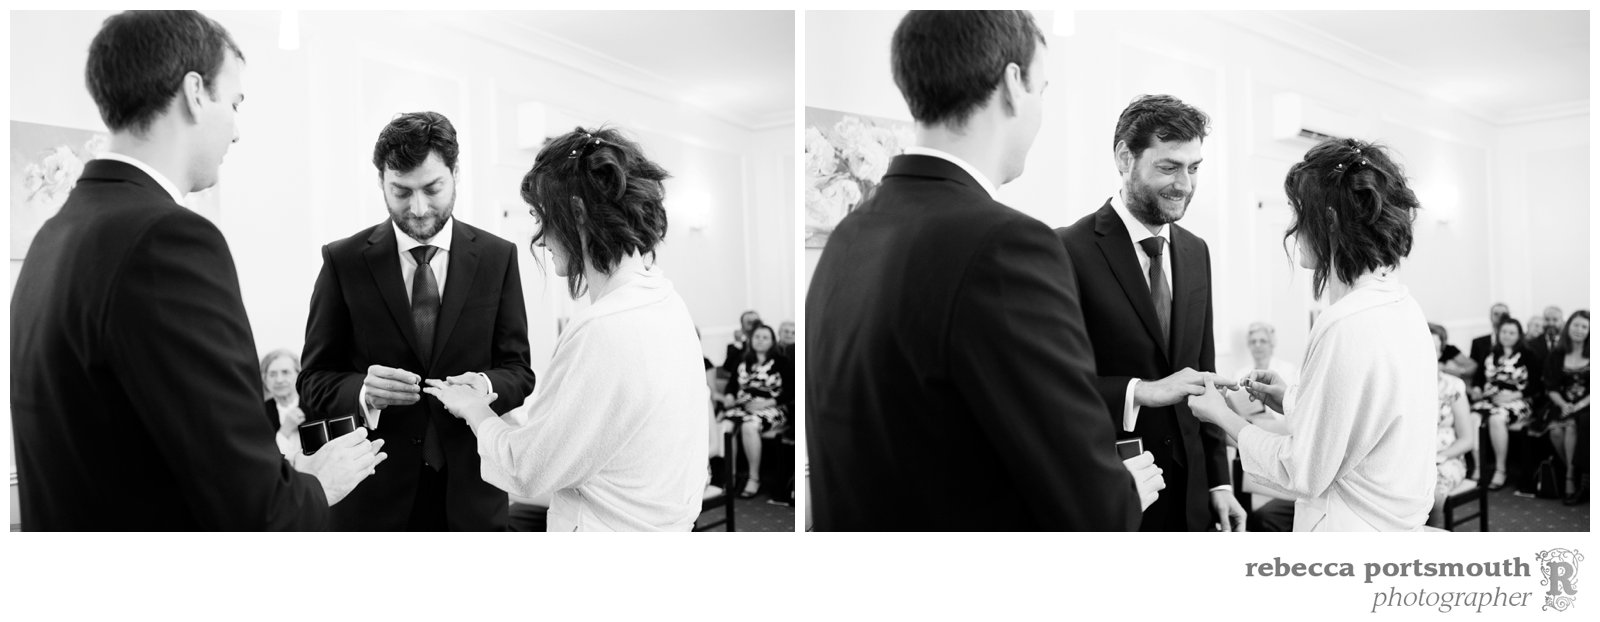 Bride and groom exchange rings at Cambridge Register Office civil wedding ceremony.